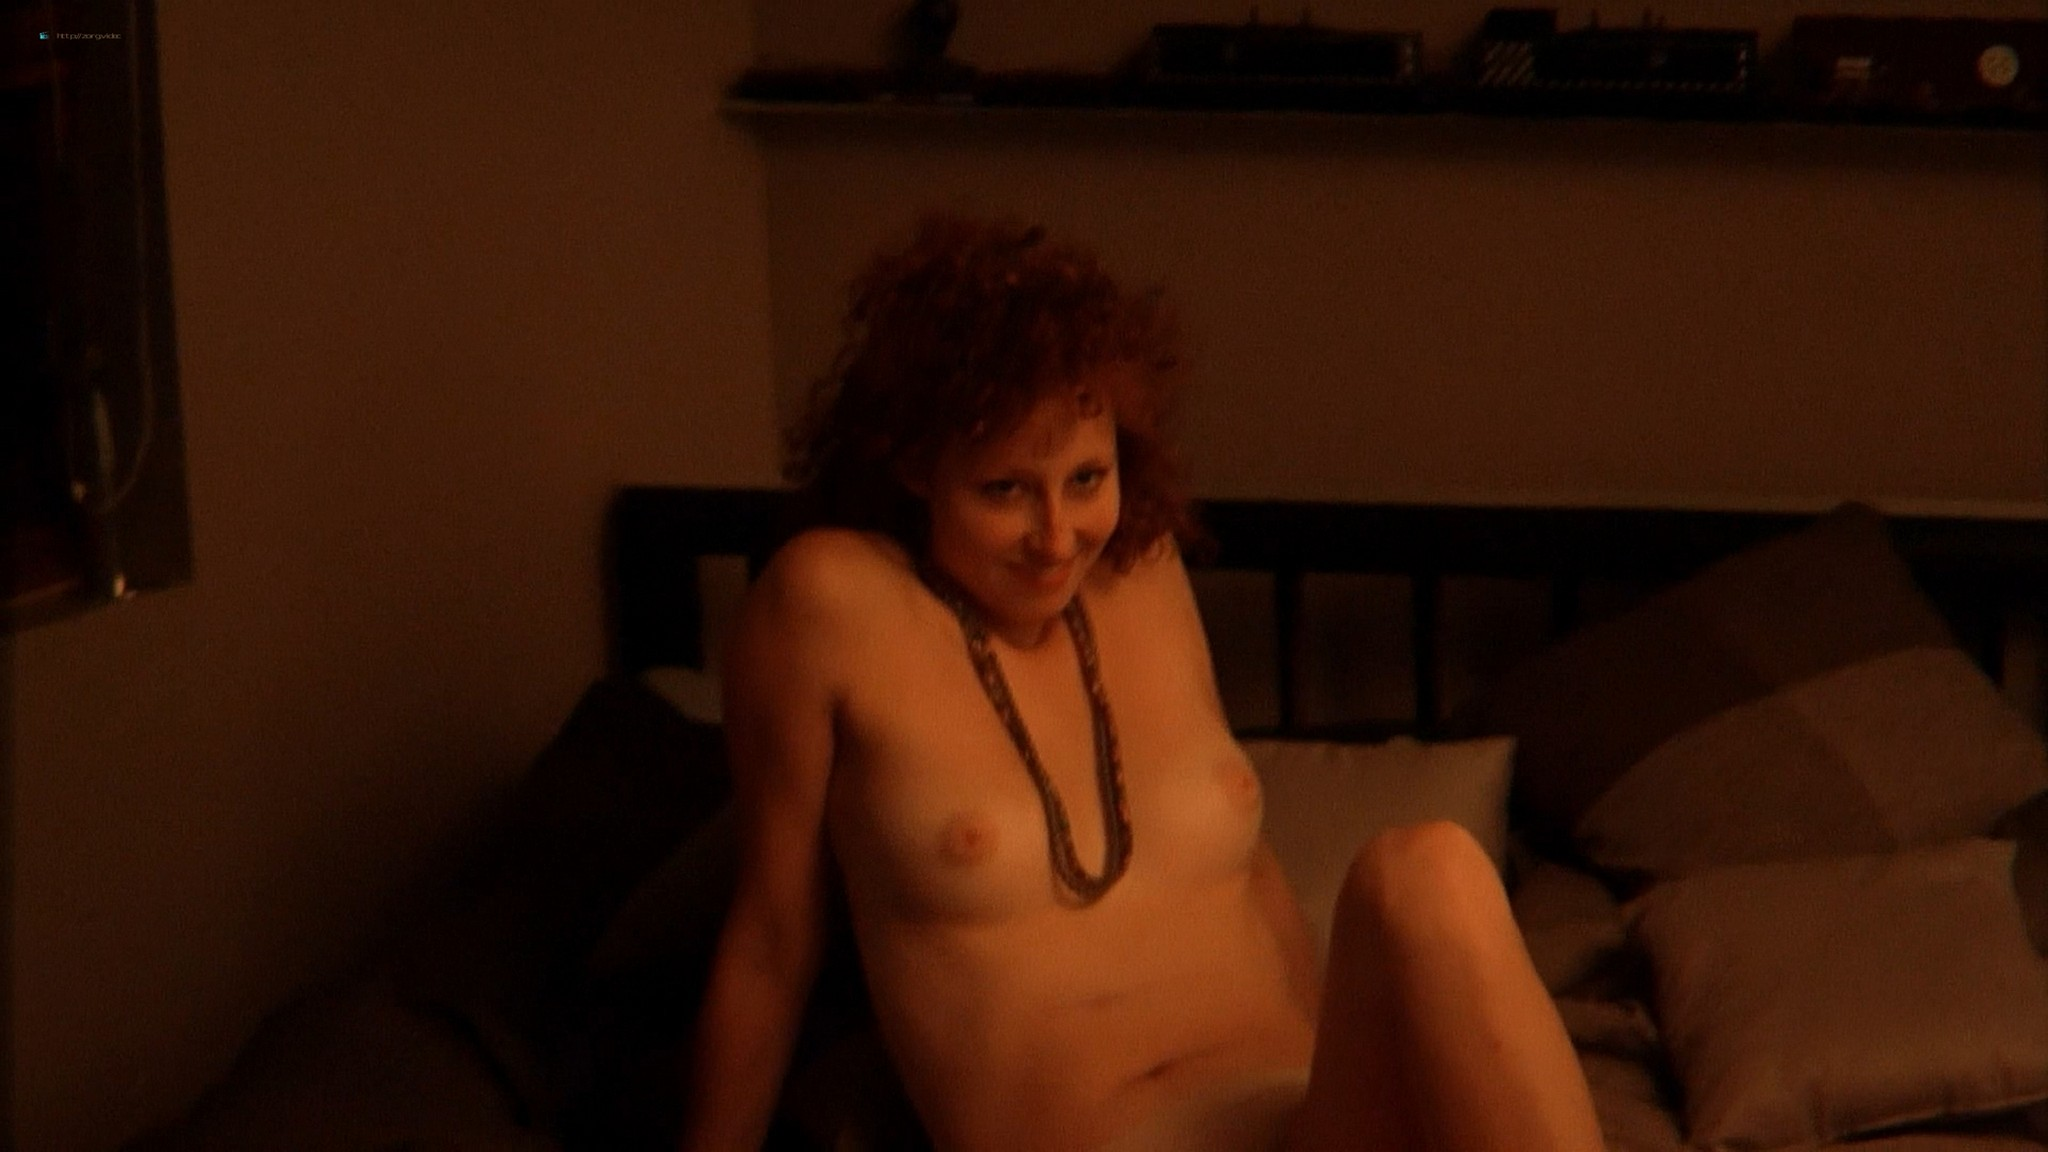 Amy Seimetz nude Kate Lyn Sheil nudeand other nude sex - Autoerotic (2010) HD 1080p Web (15)